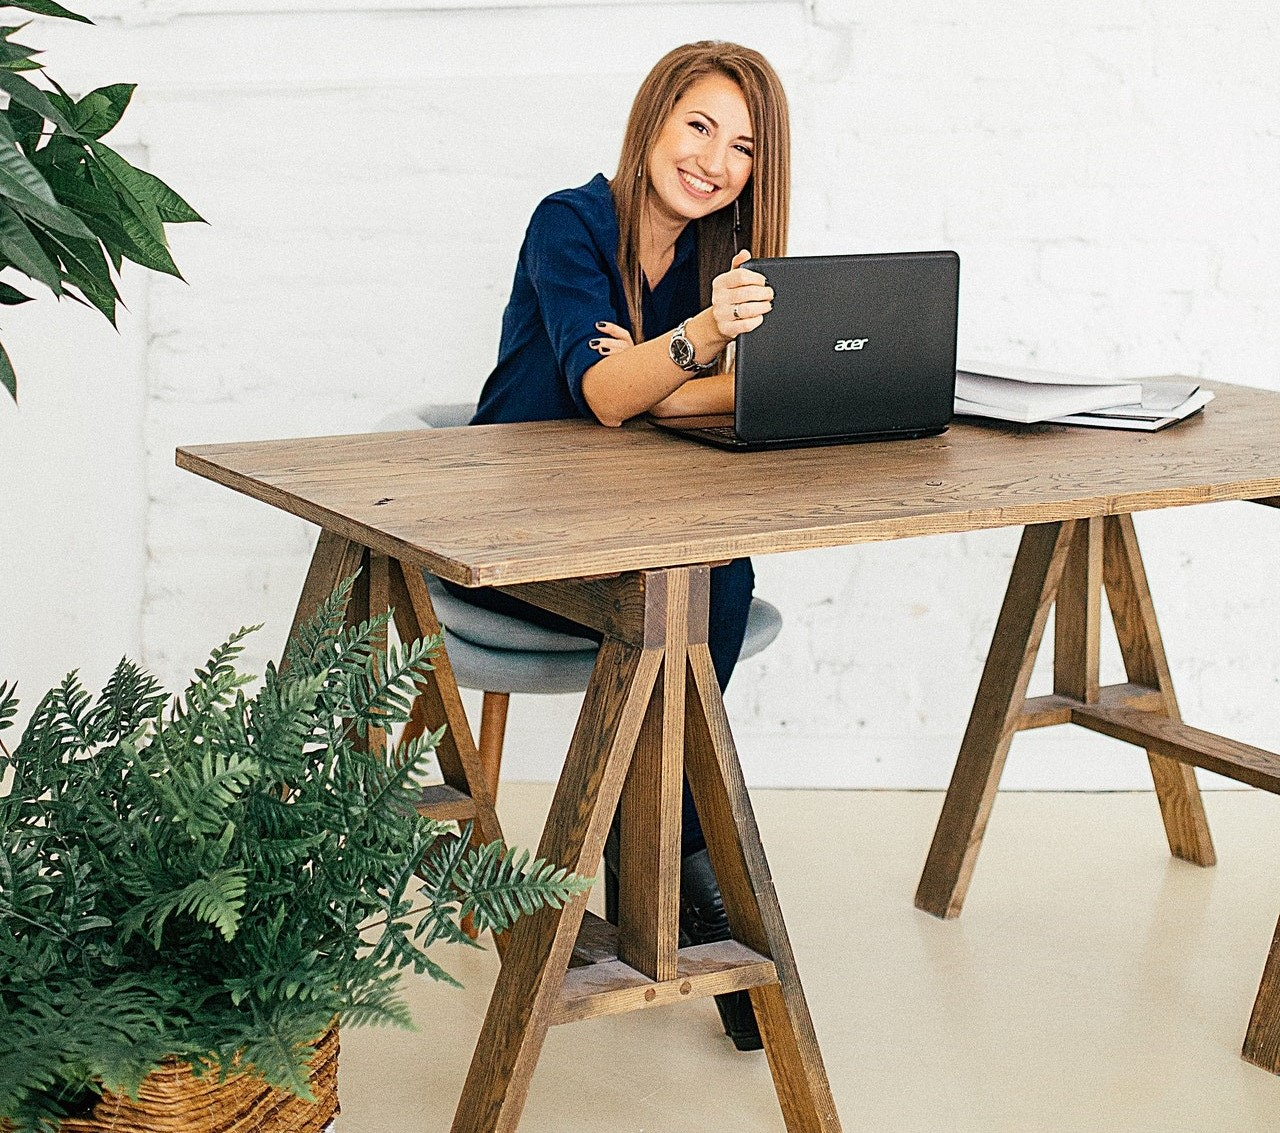 Woman sitting at table in front of laptop